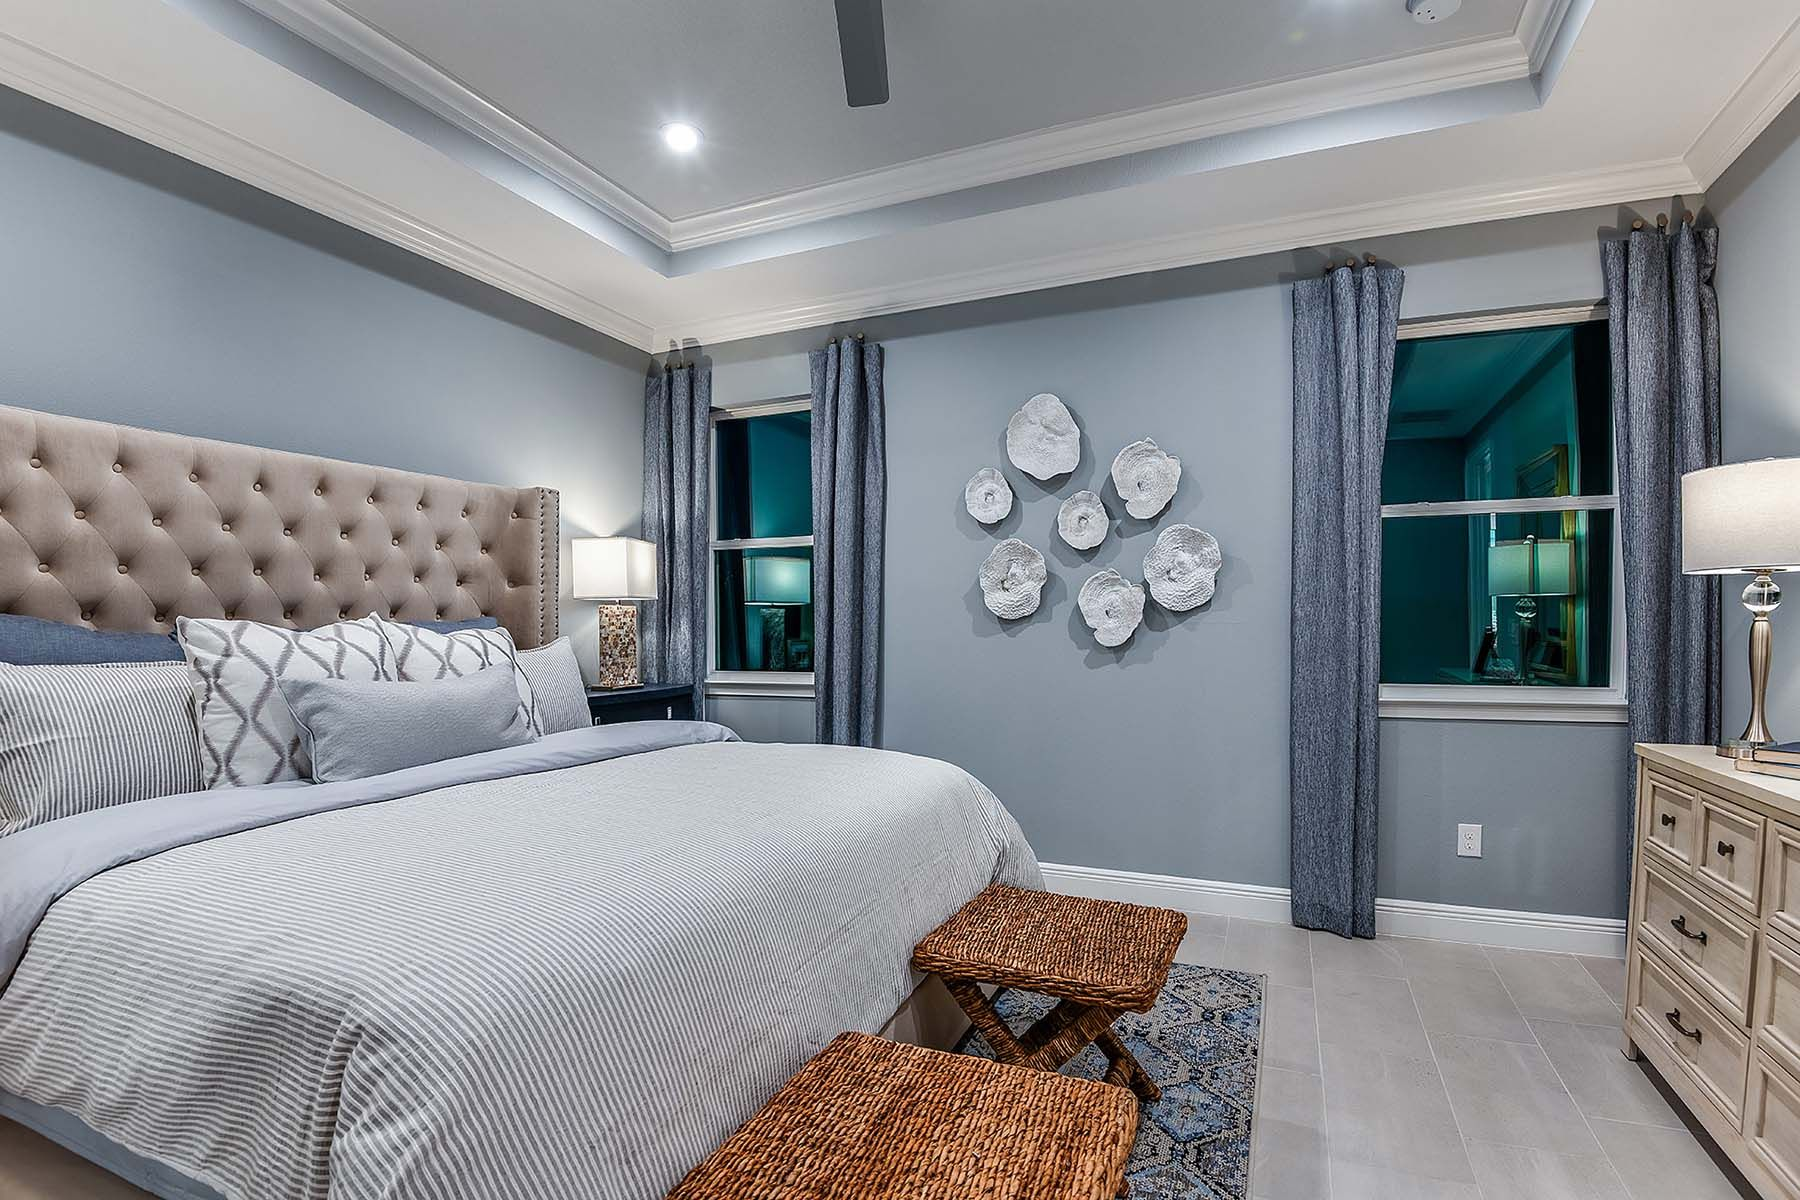 Bedroom featured in the Oceana By Mattamy Homes in Fort Myers, FL